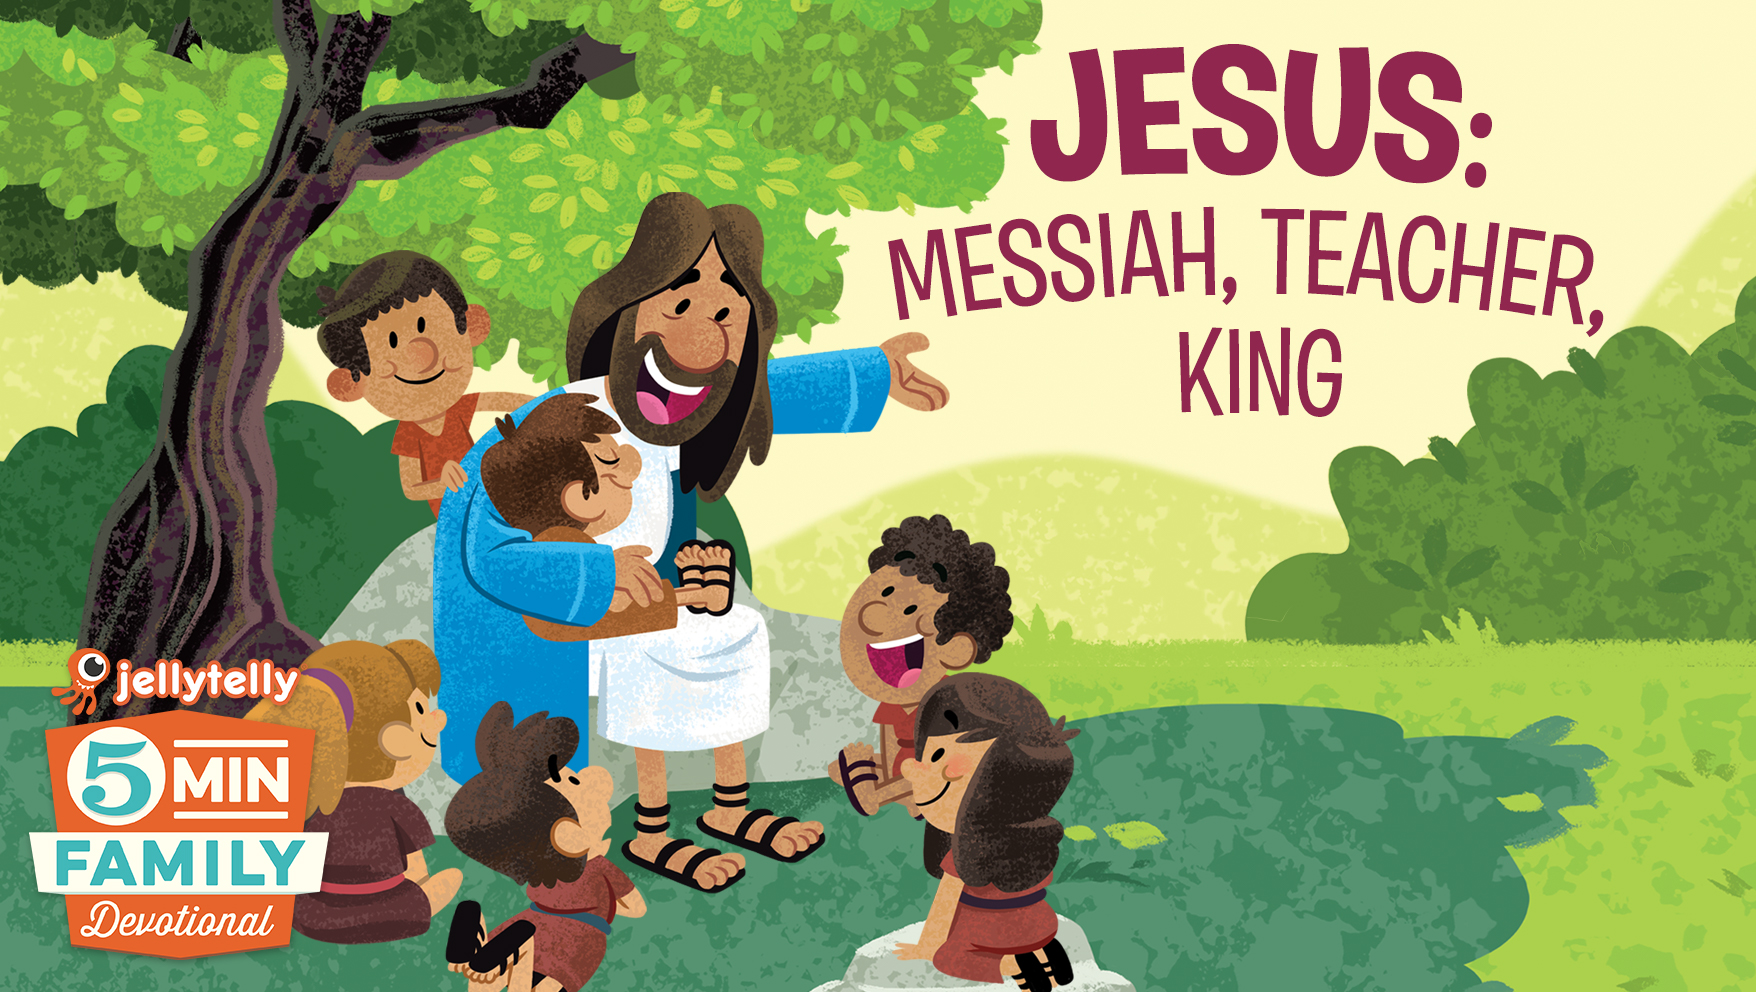 Introducing Jesus: Messiah, Teacher, King! A New 5 Minute Family Devotional Plan